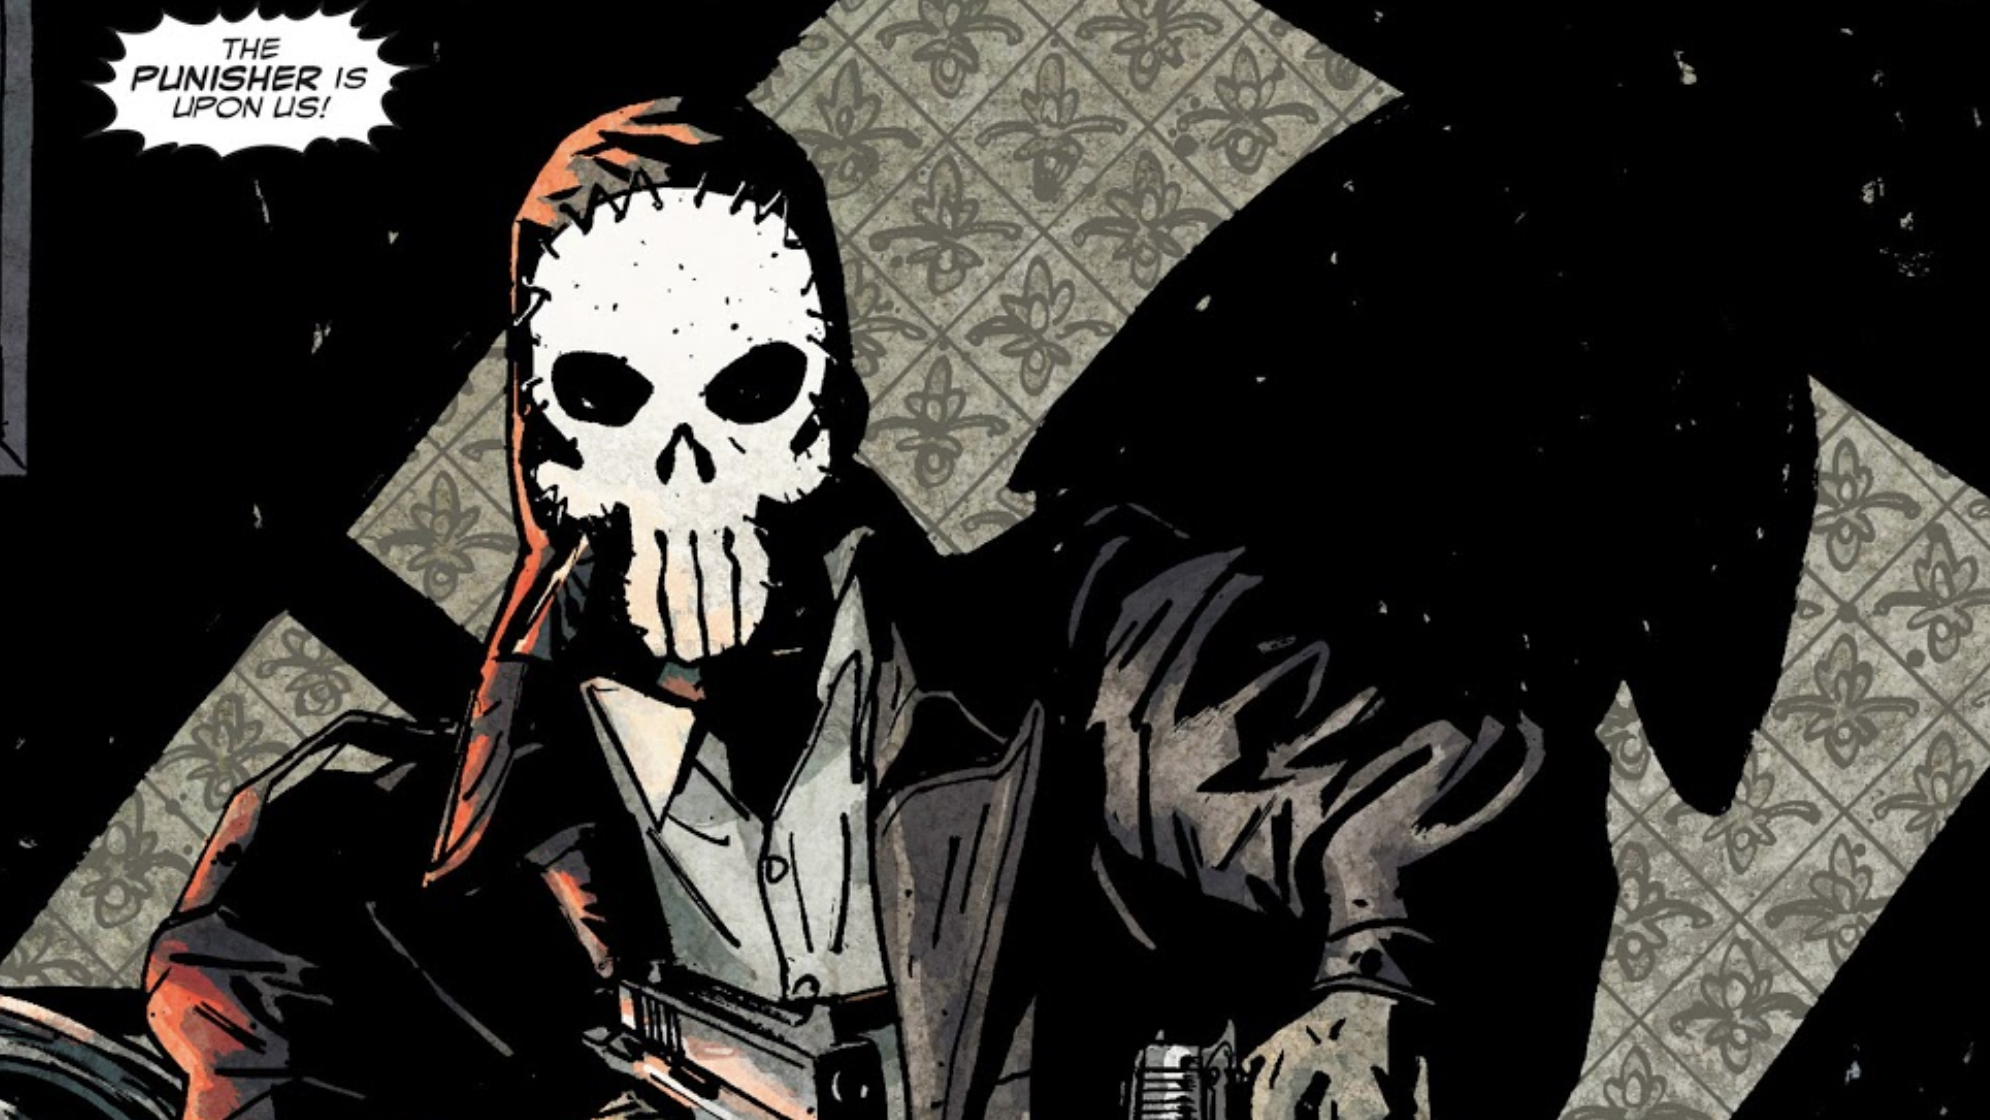 Alternative versions of the Punisher